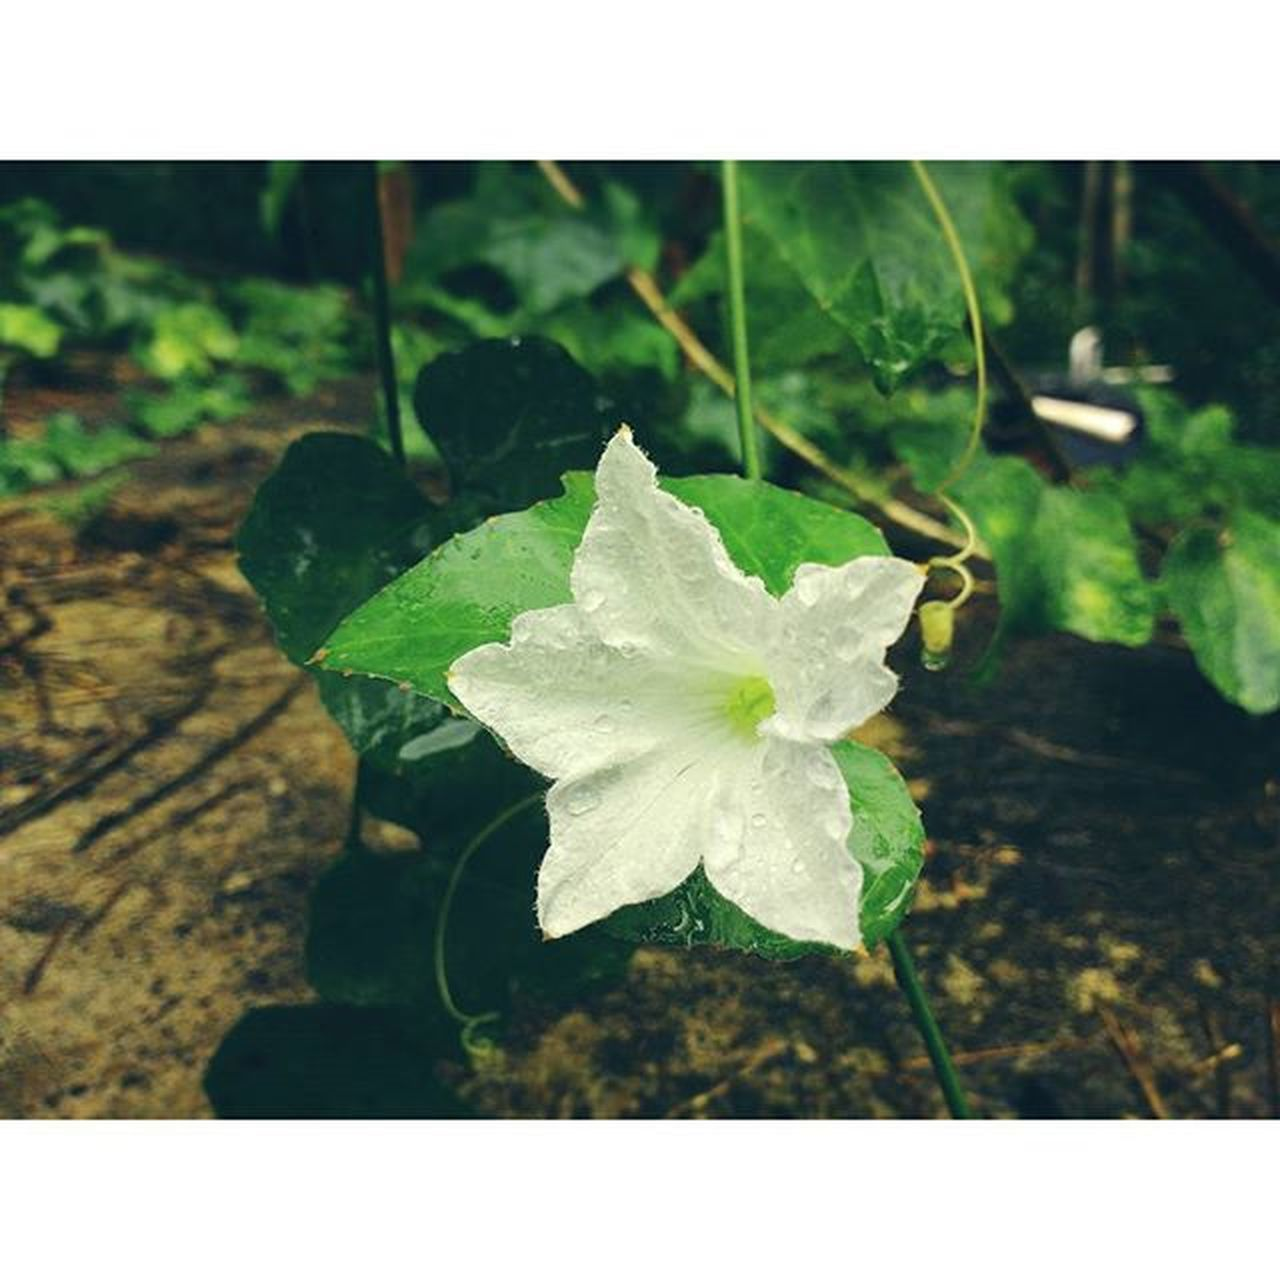 Bheegi 💧 Littleflower 🌼NaturalBeauty Rainkissed Lonleyflower Motog3gen Mobilephotography Malluink AdobeLightroom Afterlight Like4likes Instalike Instagood Instadaily Picoftheday